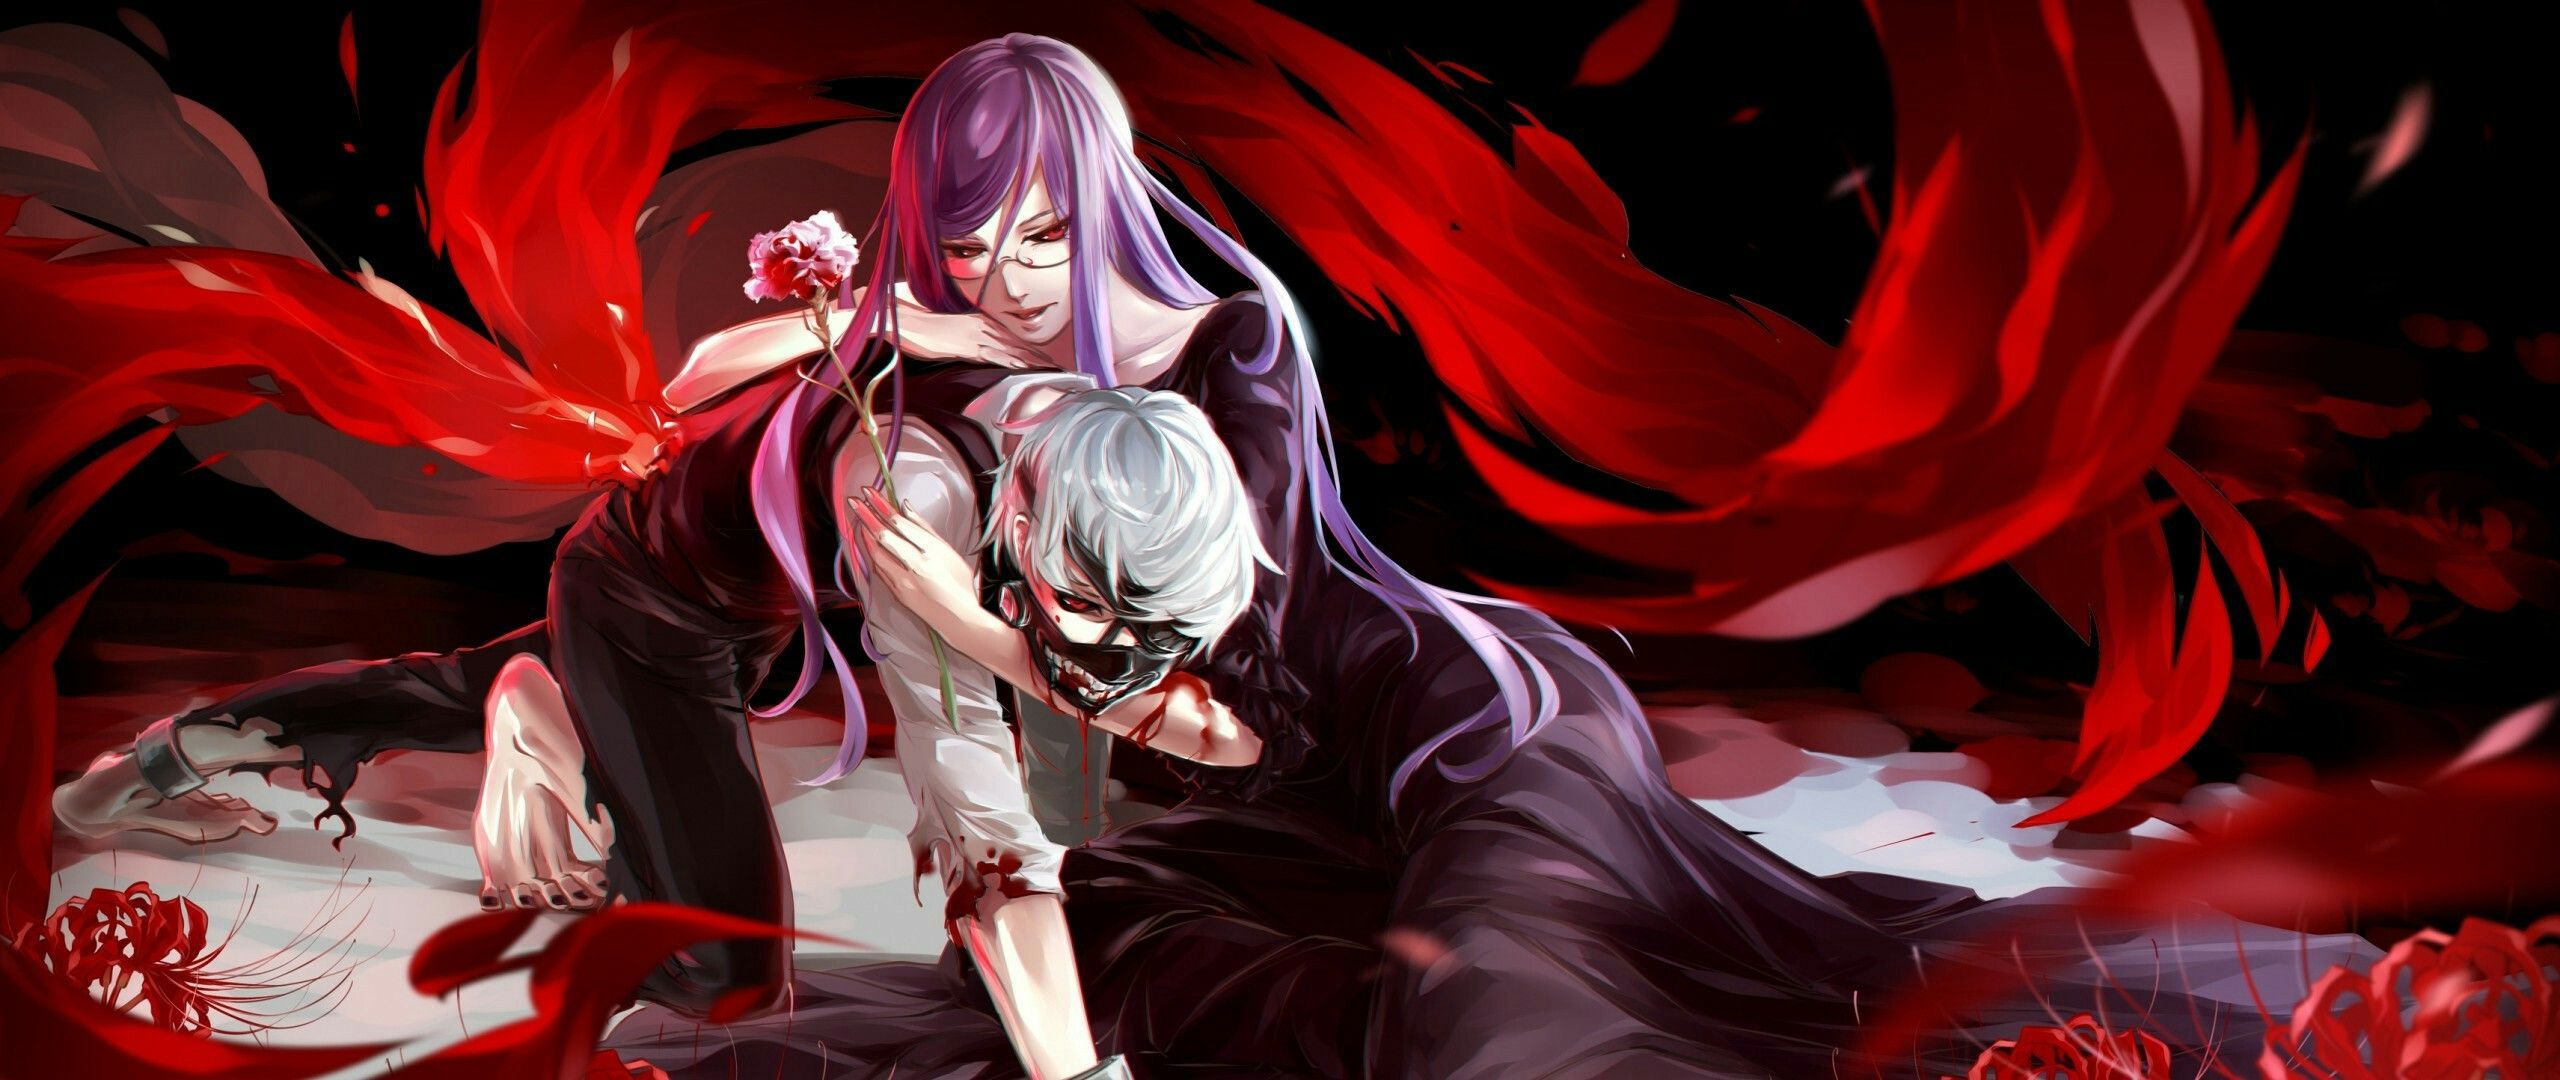 Pin by Sahek Ovesh on Tokyo ghoul anime Tokyo ghoul